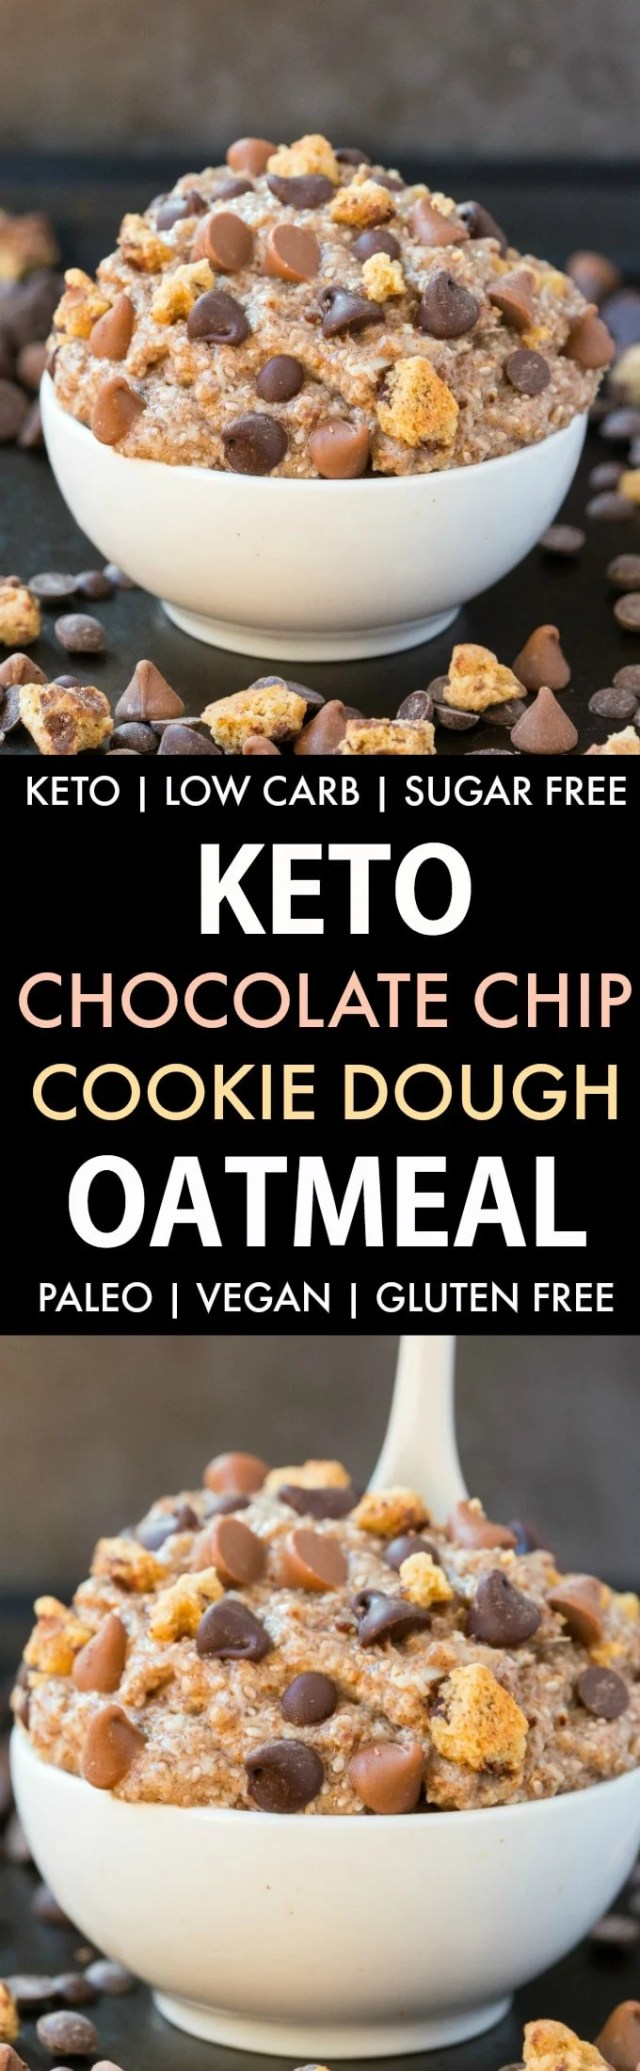 Healthy Low Carb Keto Chocolate Chip Cookie Dough Oatmeal Paleo Vegan